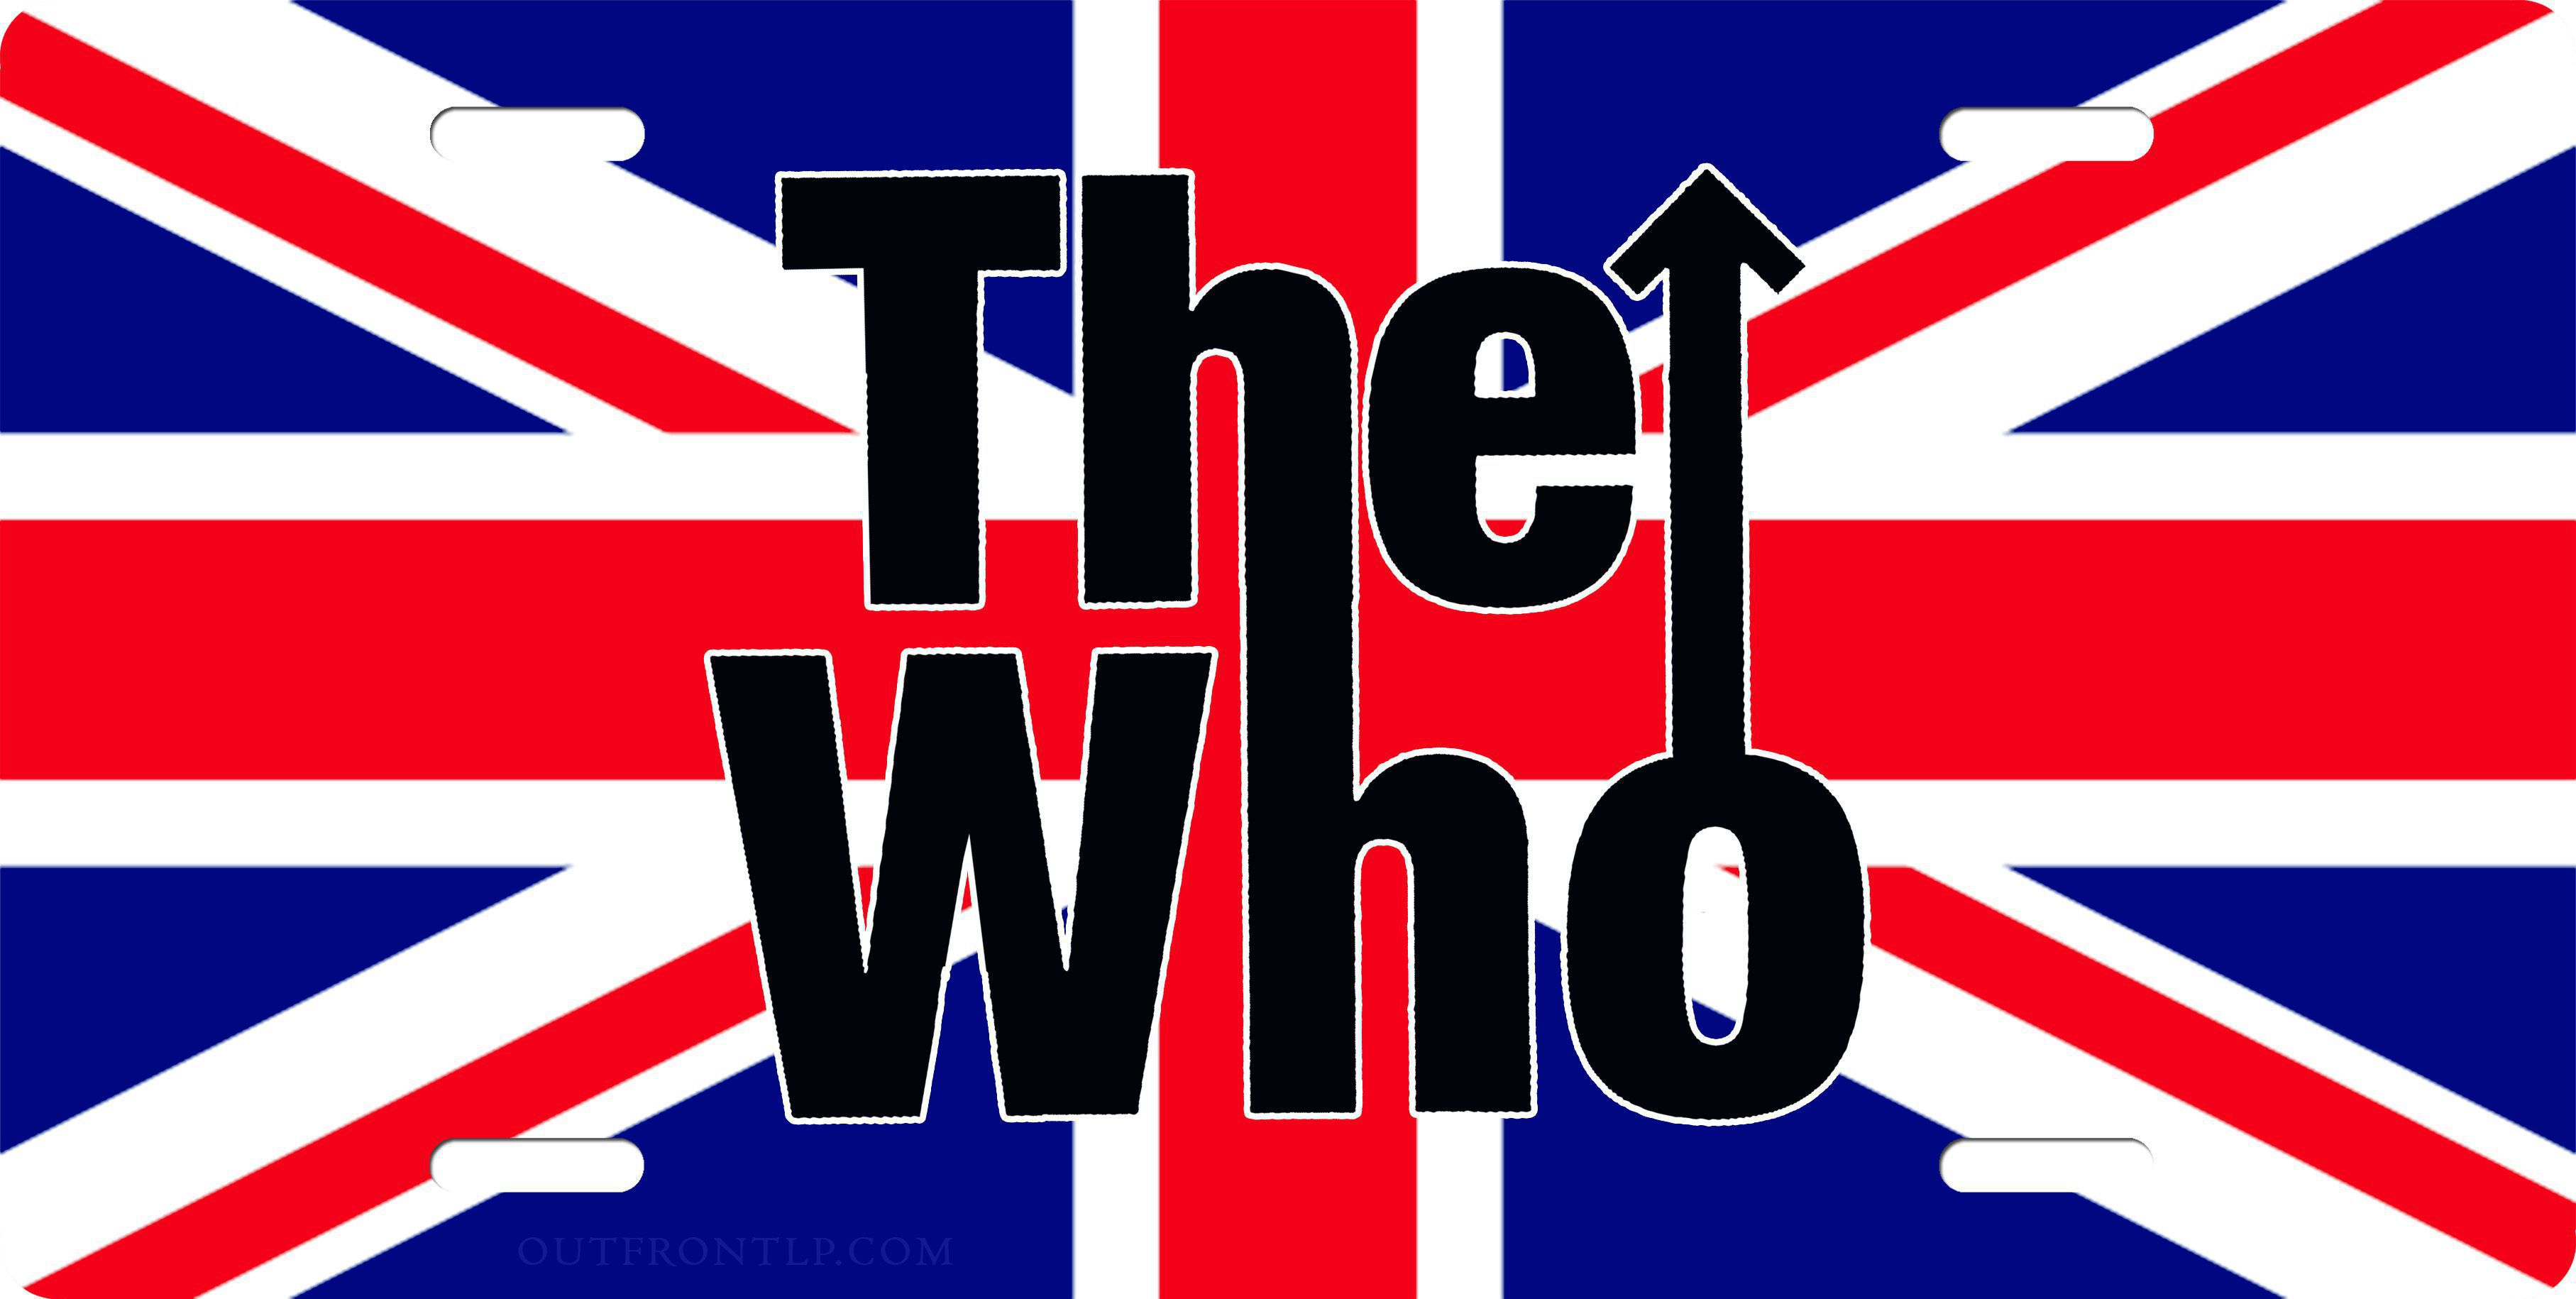 Whos Last - The Who